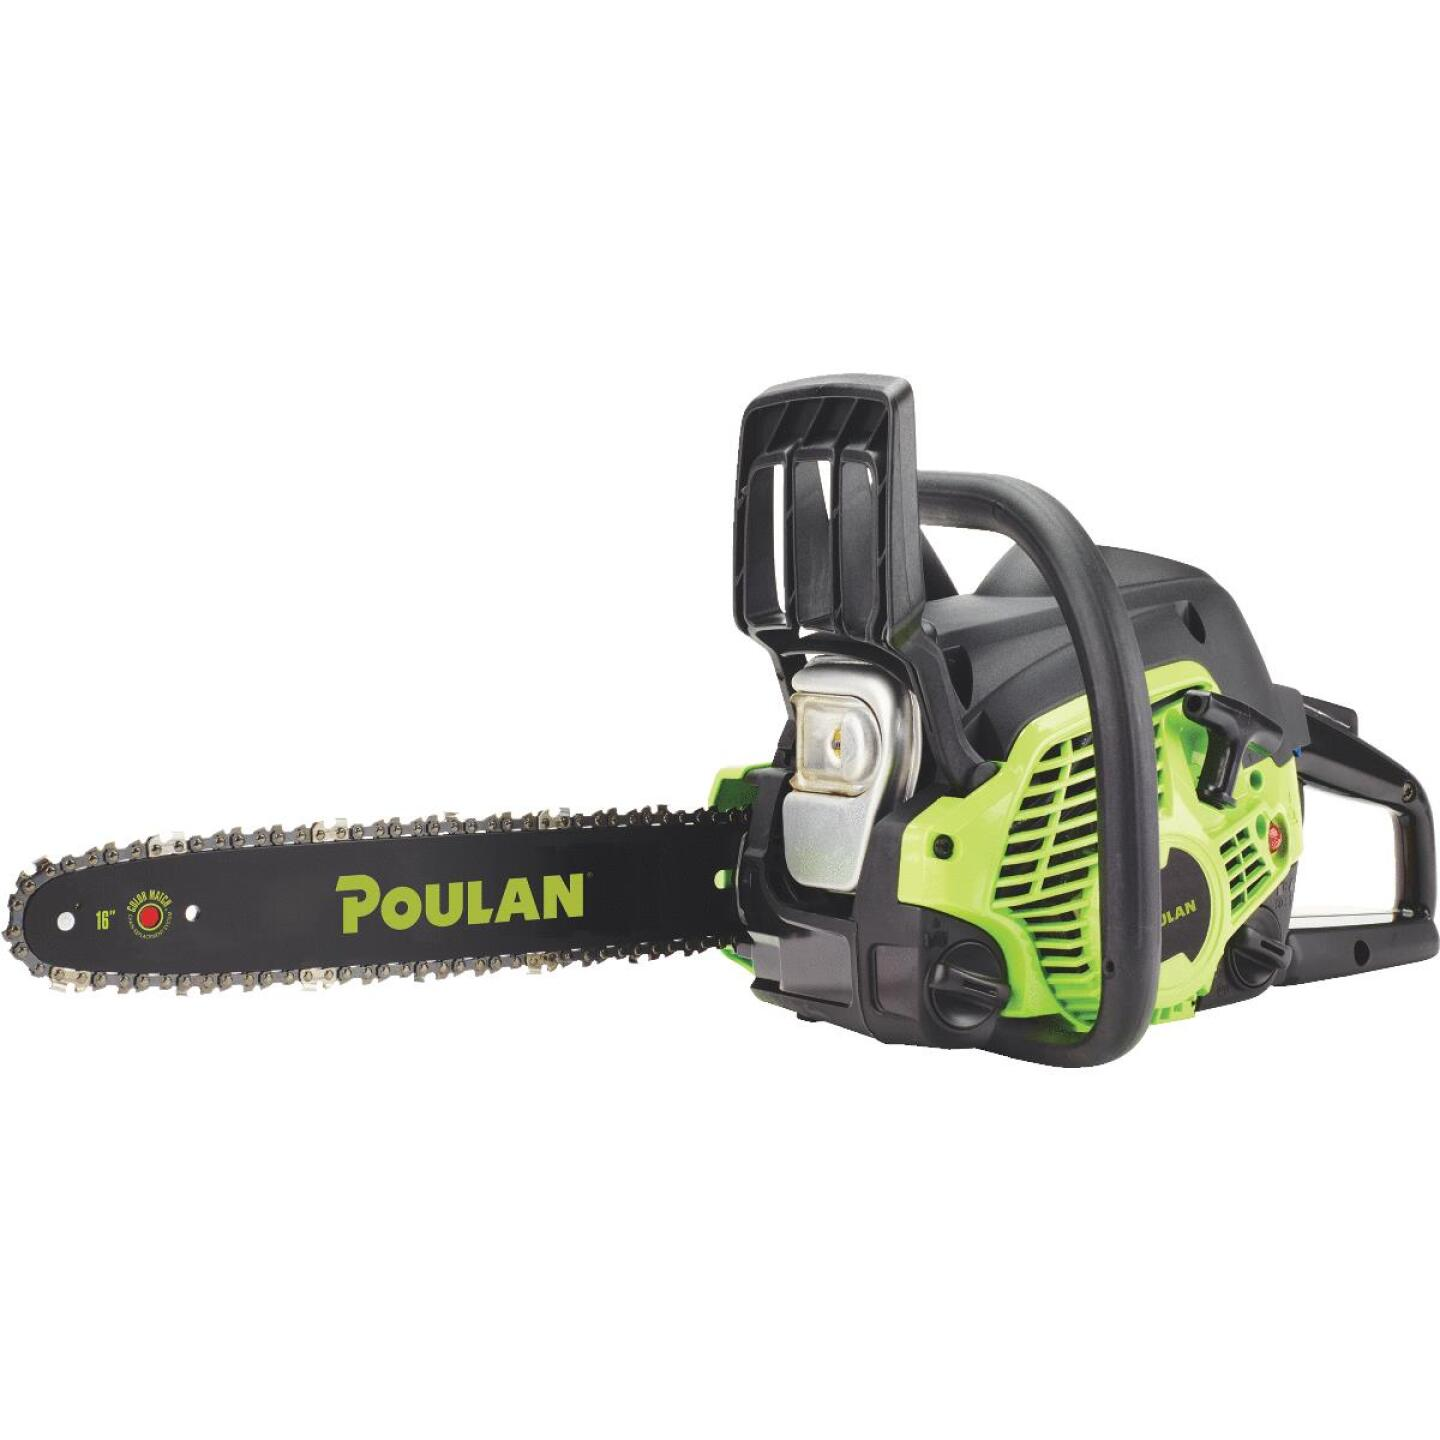 Poulan PL3816 16 In. 38 CC Gas Chainsaw Image 1